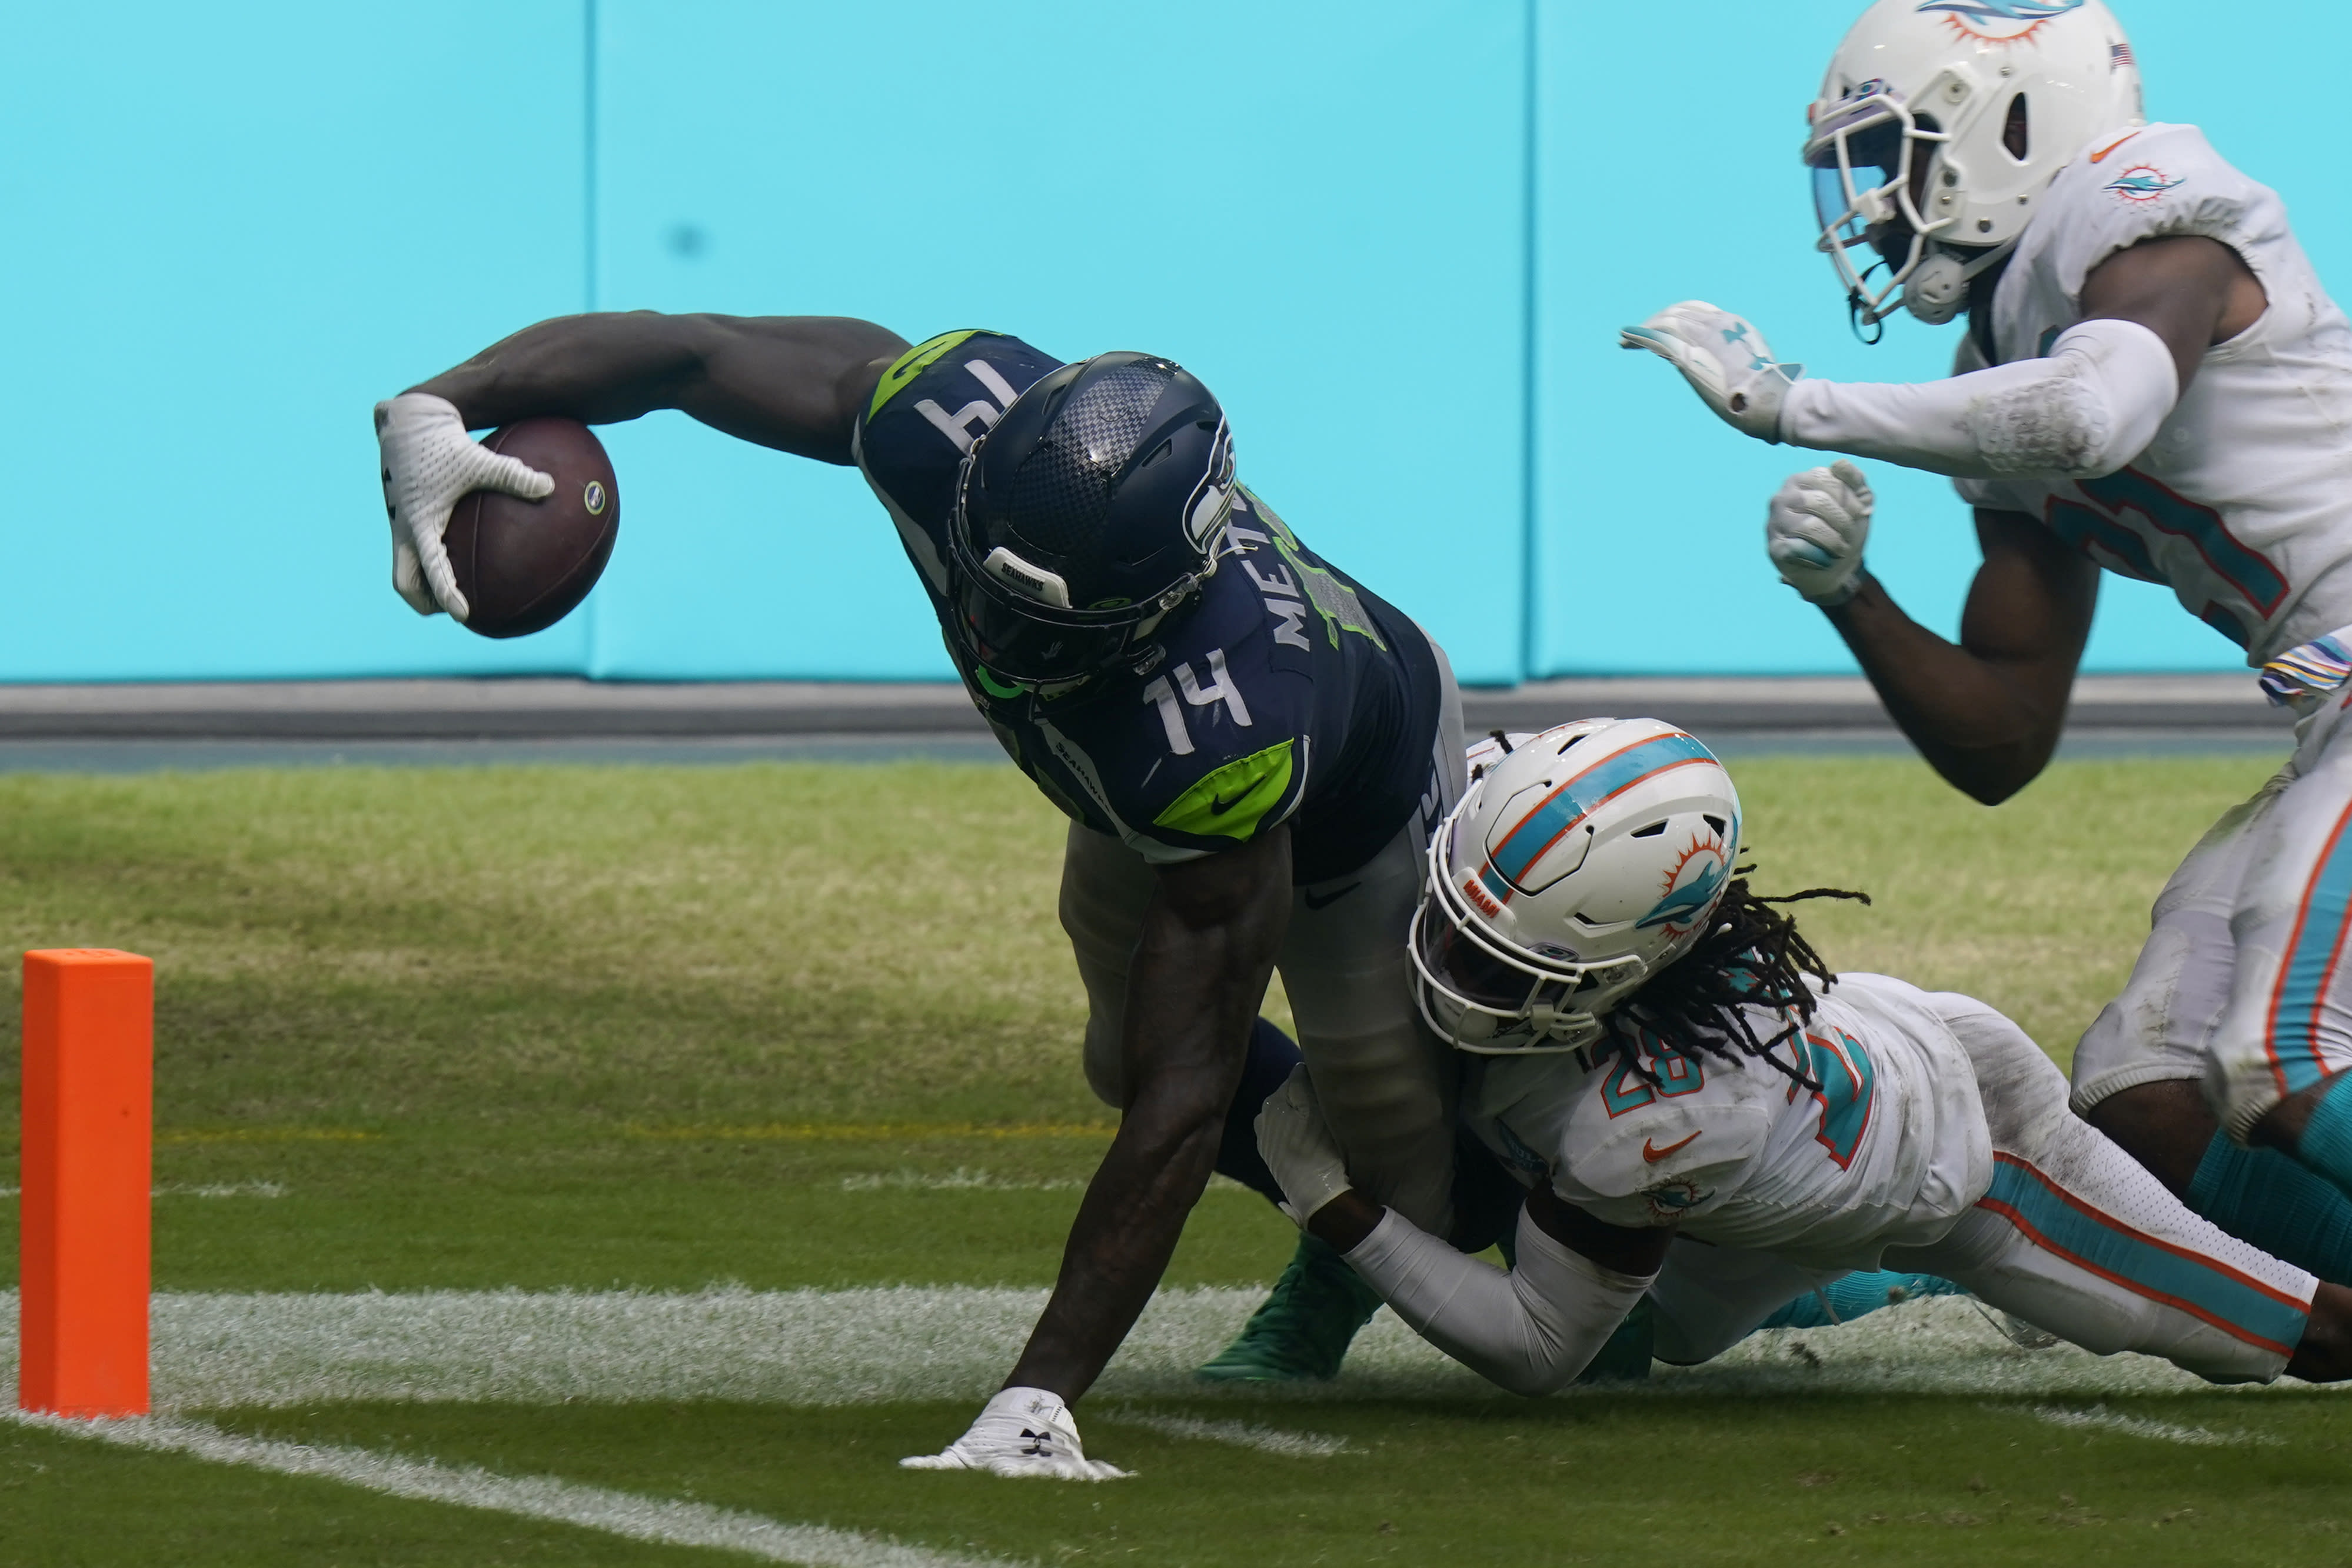 Miami Dolphins strong safety Bobby McCain (28) takes Seattle Seahawks wide receiver DK Metcalf (14) near the end zone, during the second half of an NFL football game, Sunday, Oct. 4, 2020, in Miami Gardens, Fla. (AP Photo/Lynne Sladky)